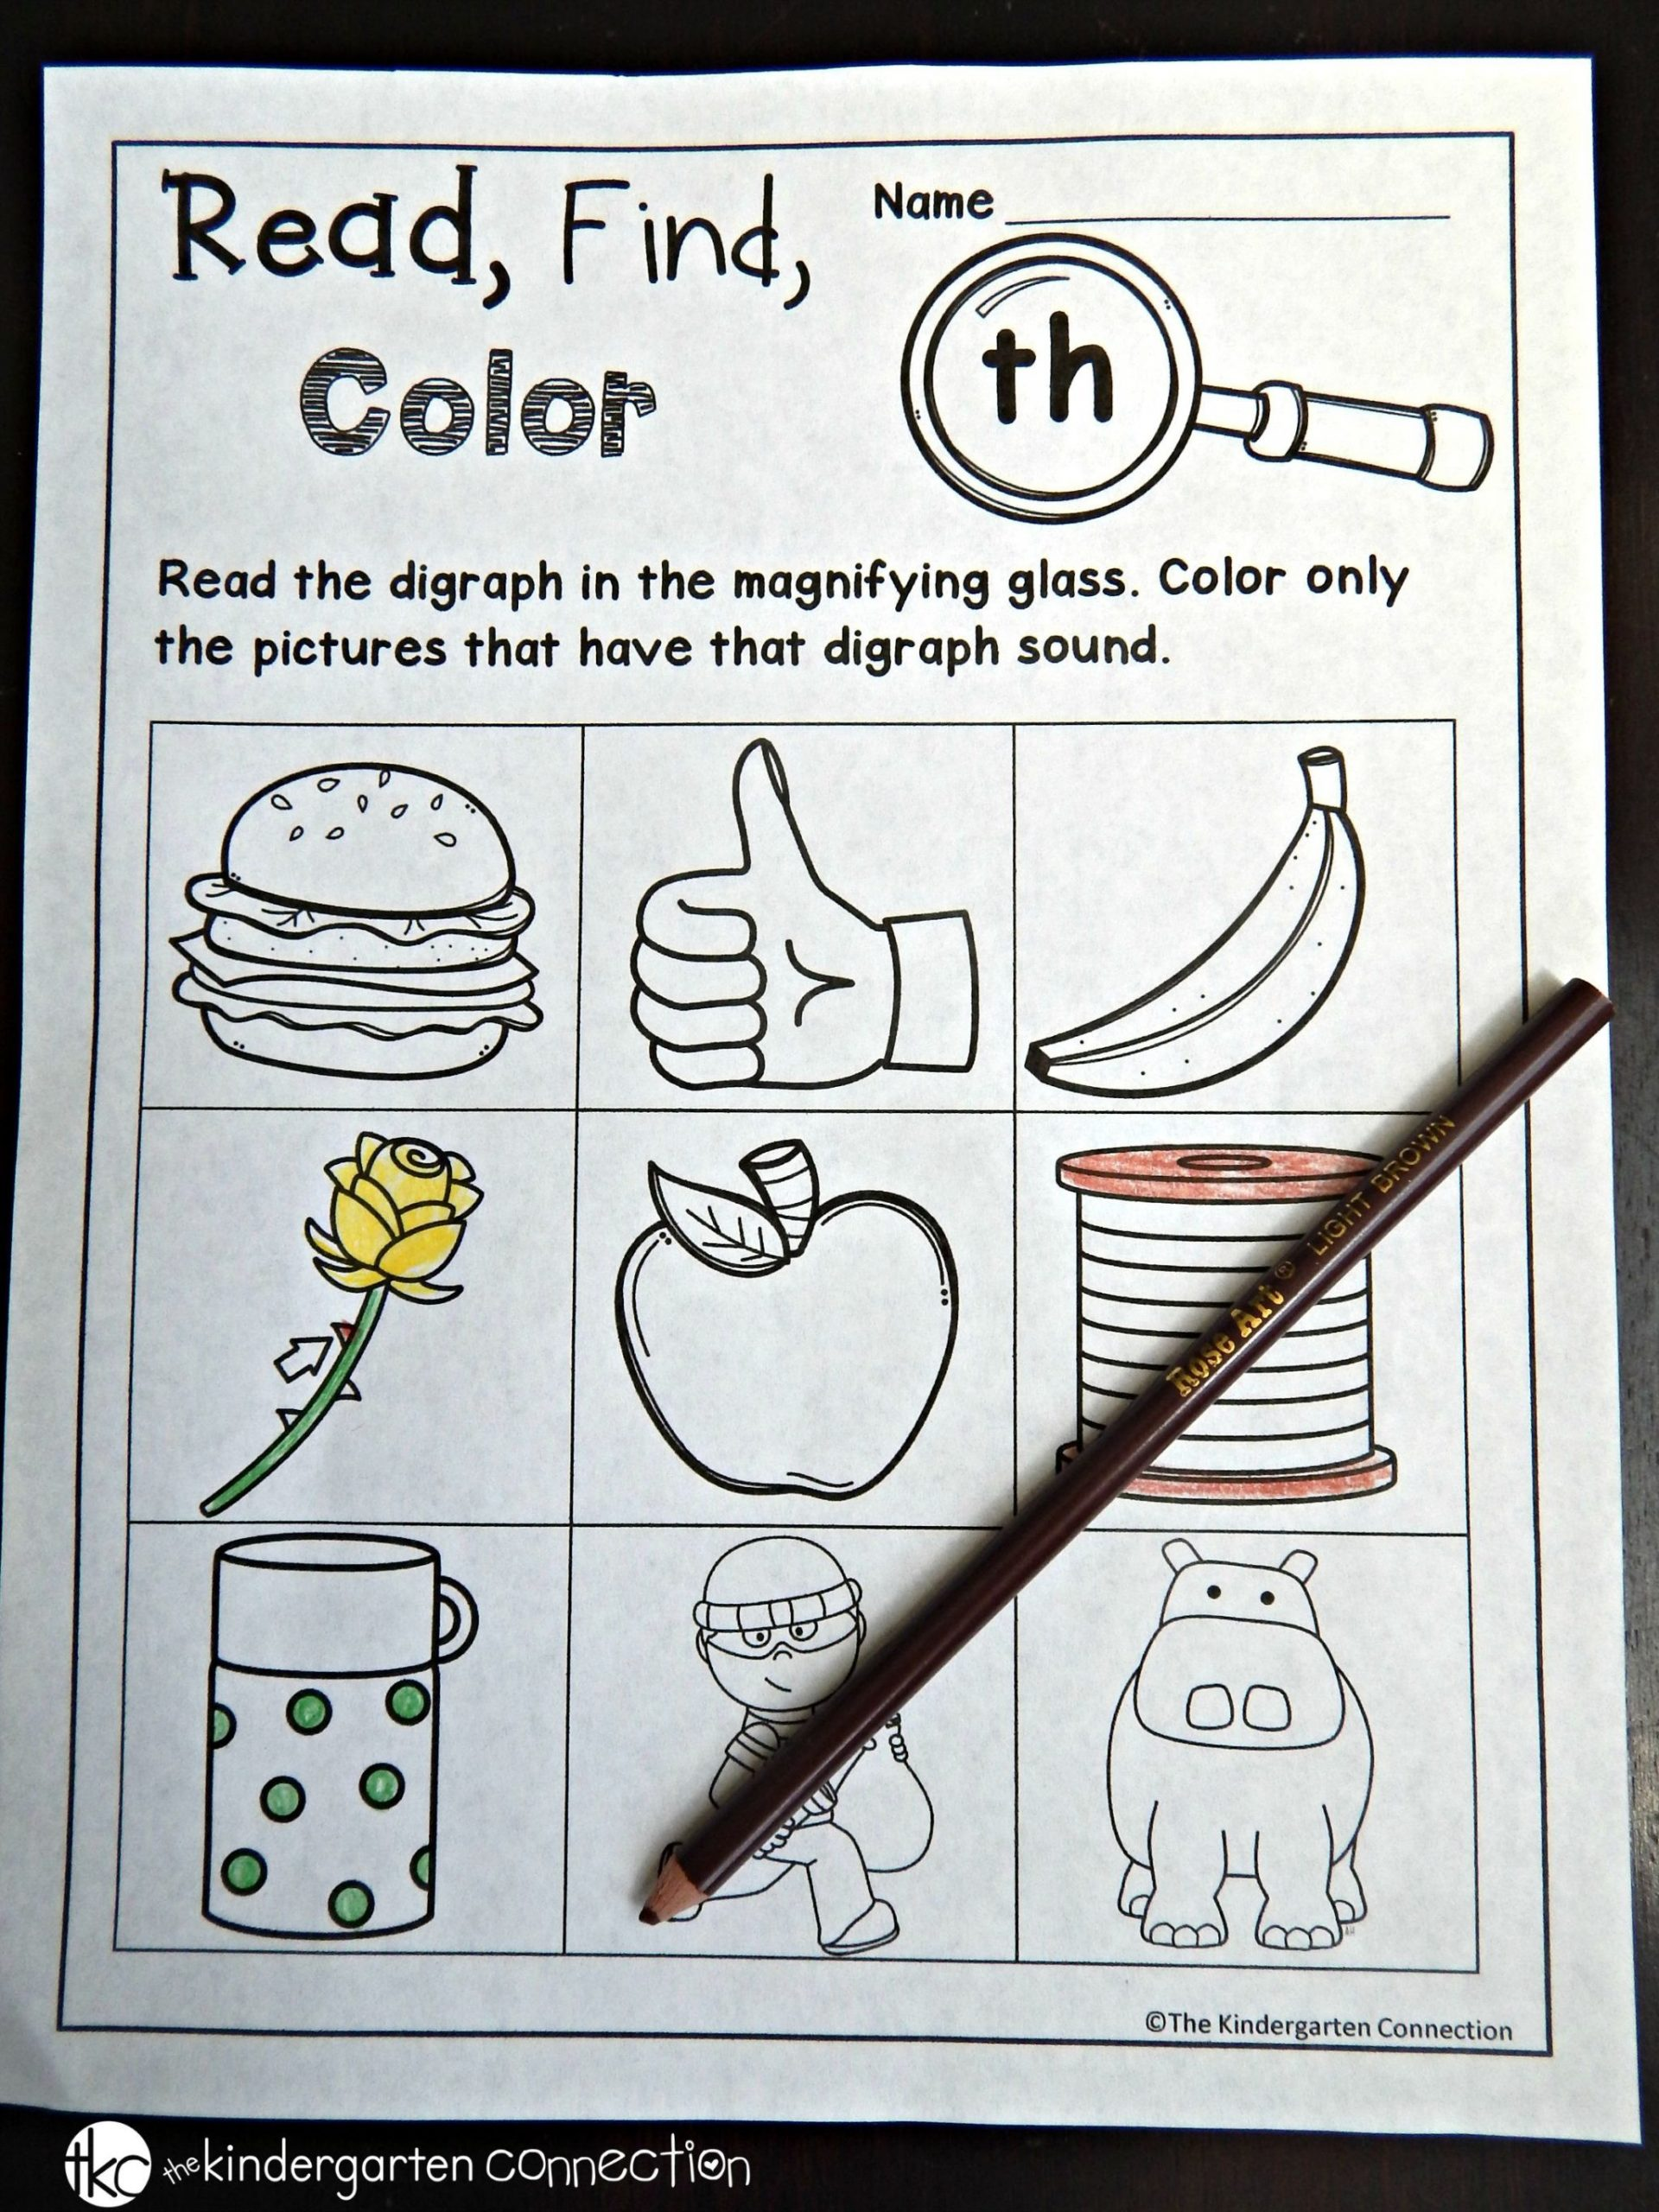 Th sound Worksheets Kindergarten Free Digraph and Cvce Printables the Kindergarten Connection